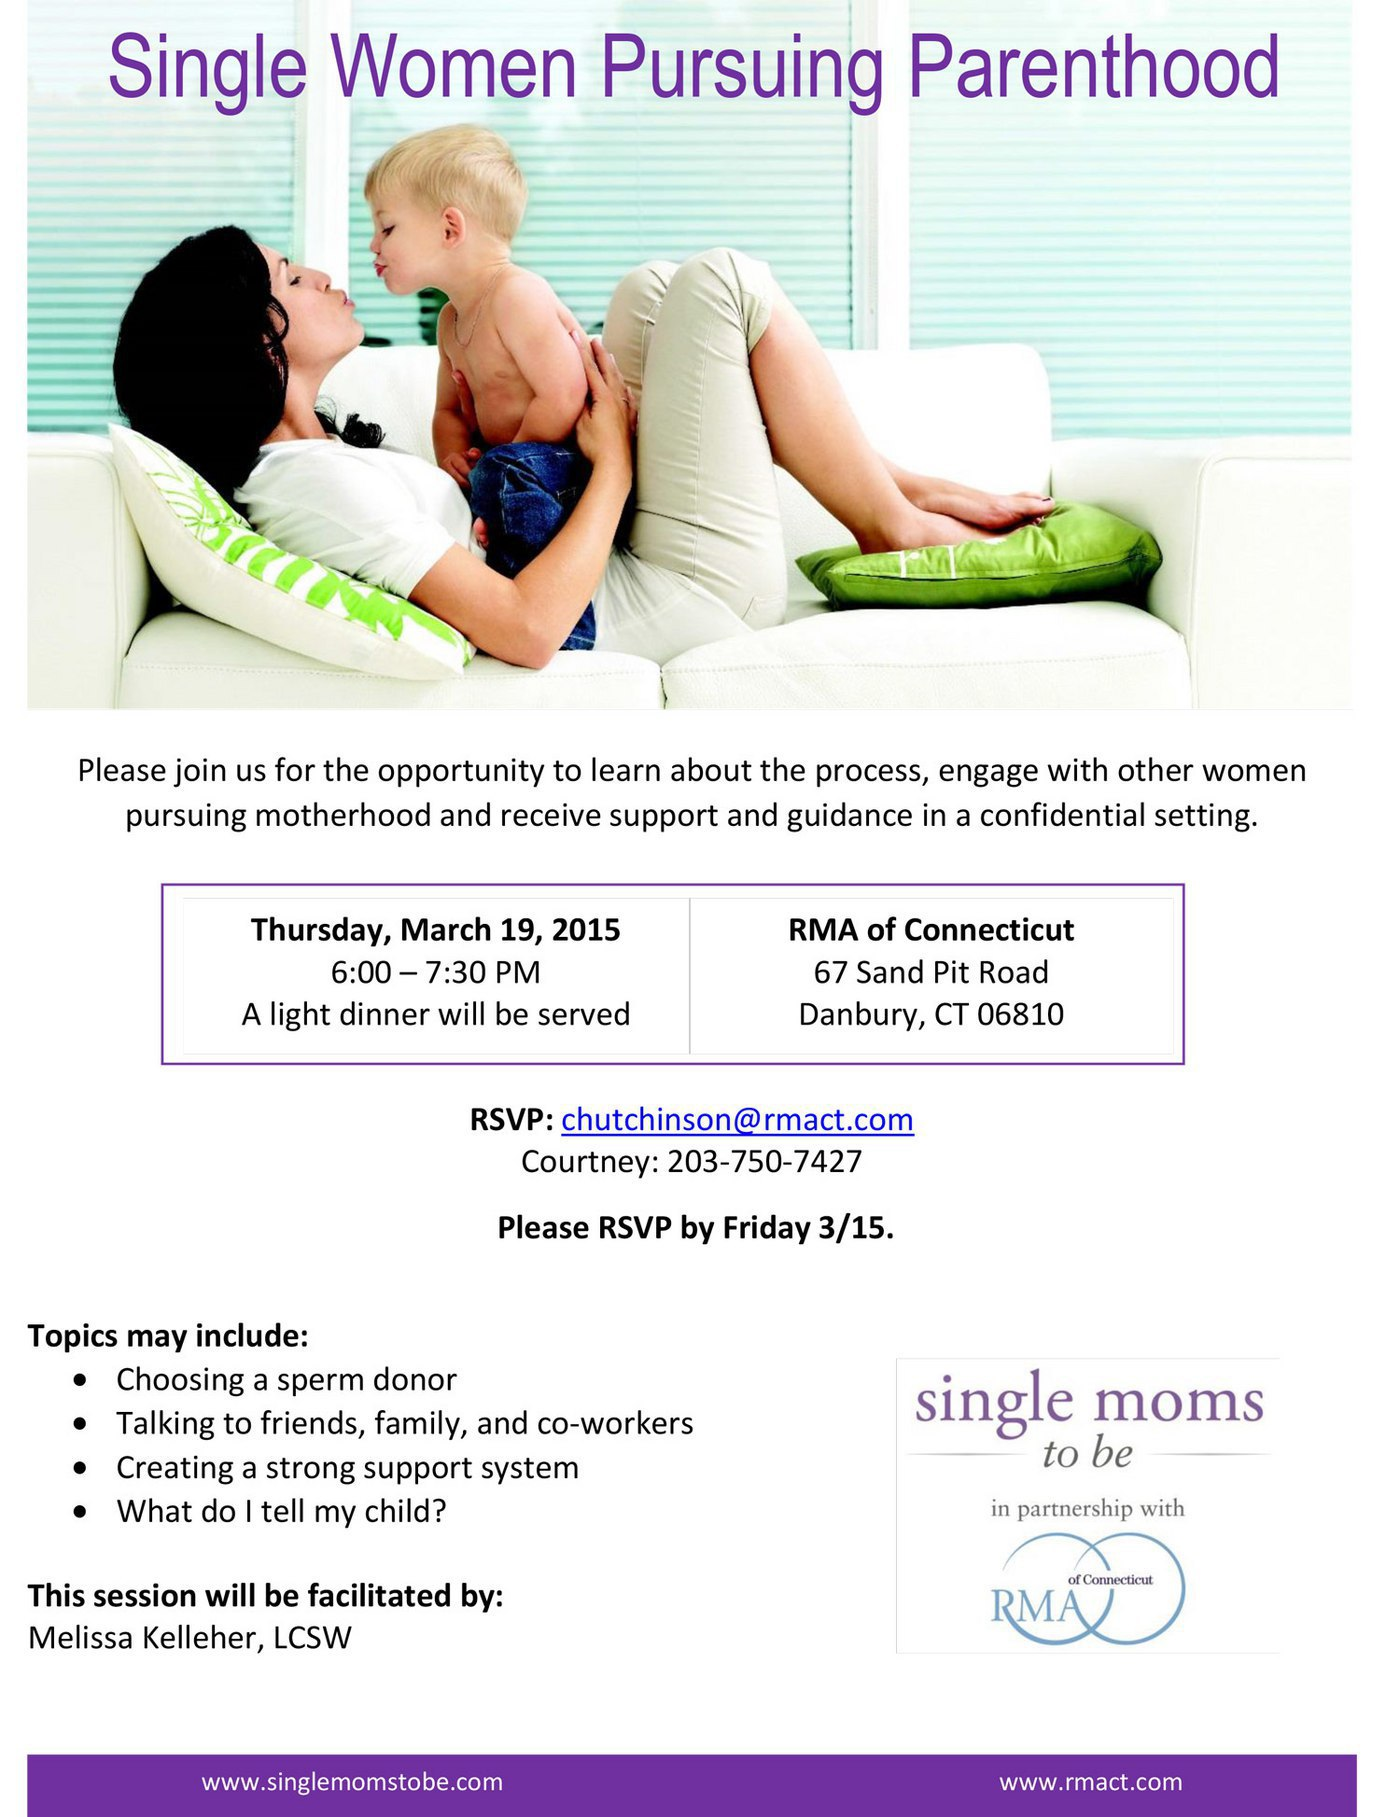 Single Women Pursuing Parenthood Event